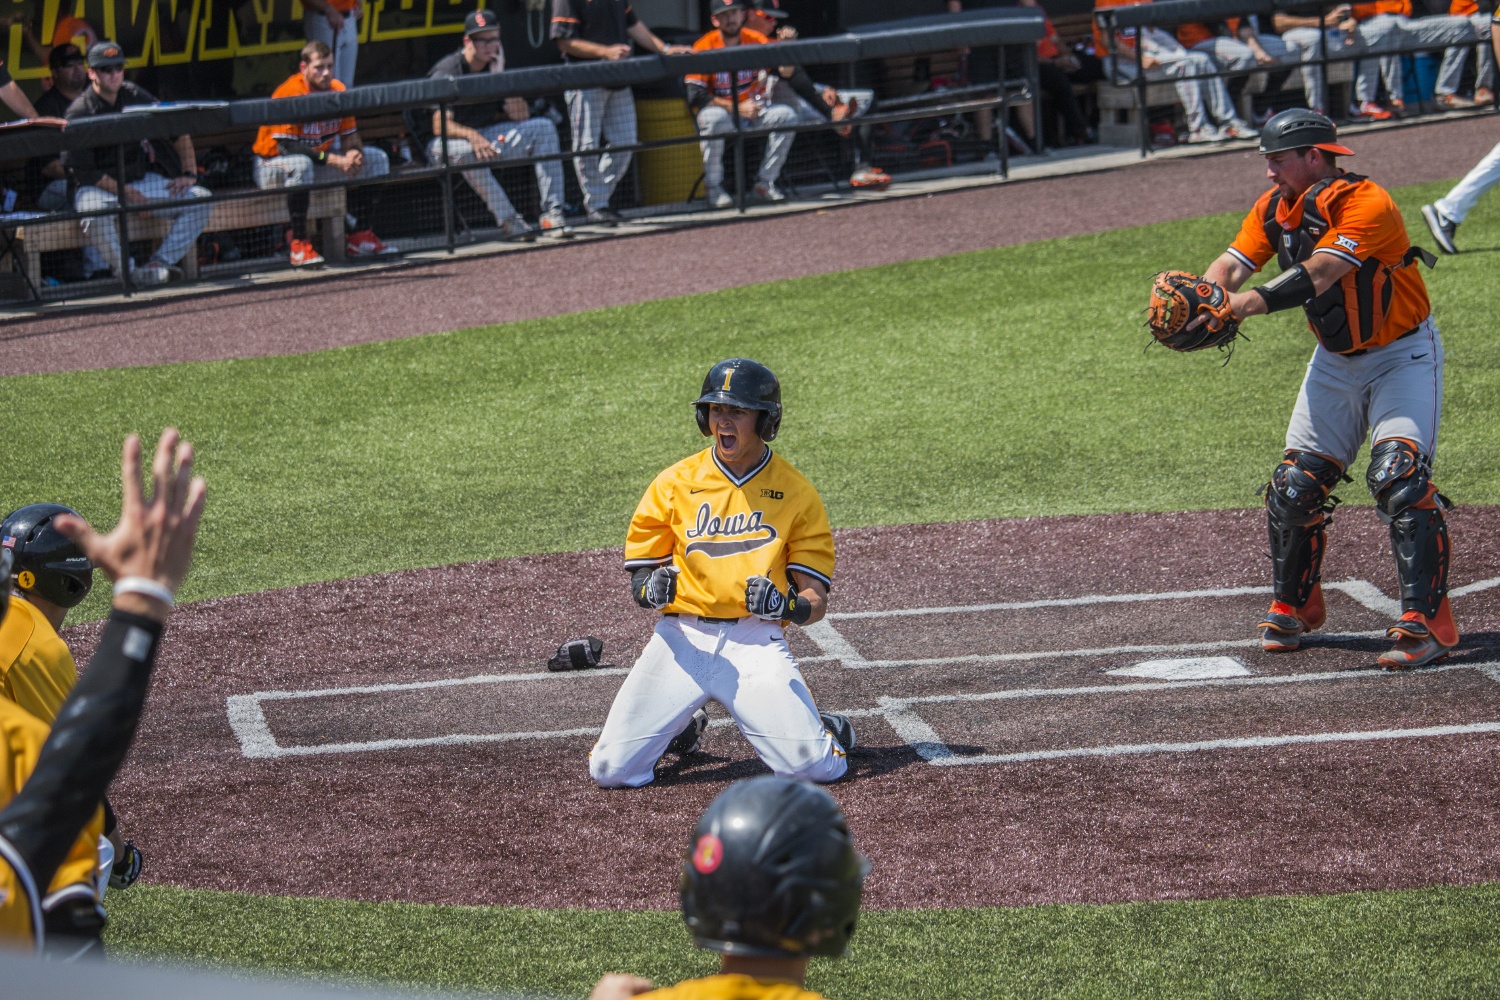 Iowa infielder Mitchell Boe celebrates after hitting a home run during baseball Iowa vs. Oklahoma State at Duane Banks Field on May 6, 2018.